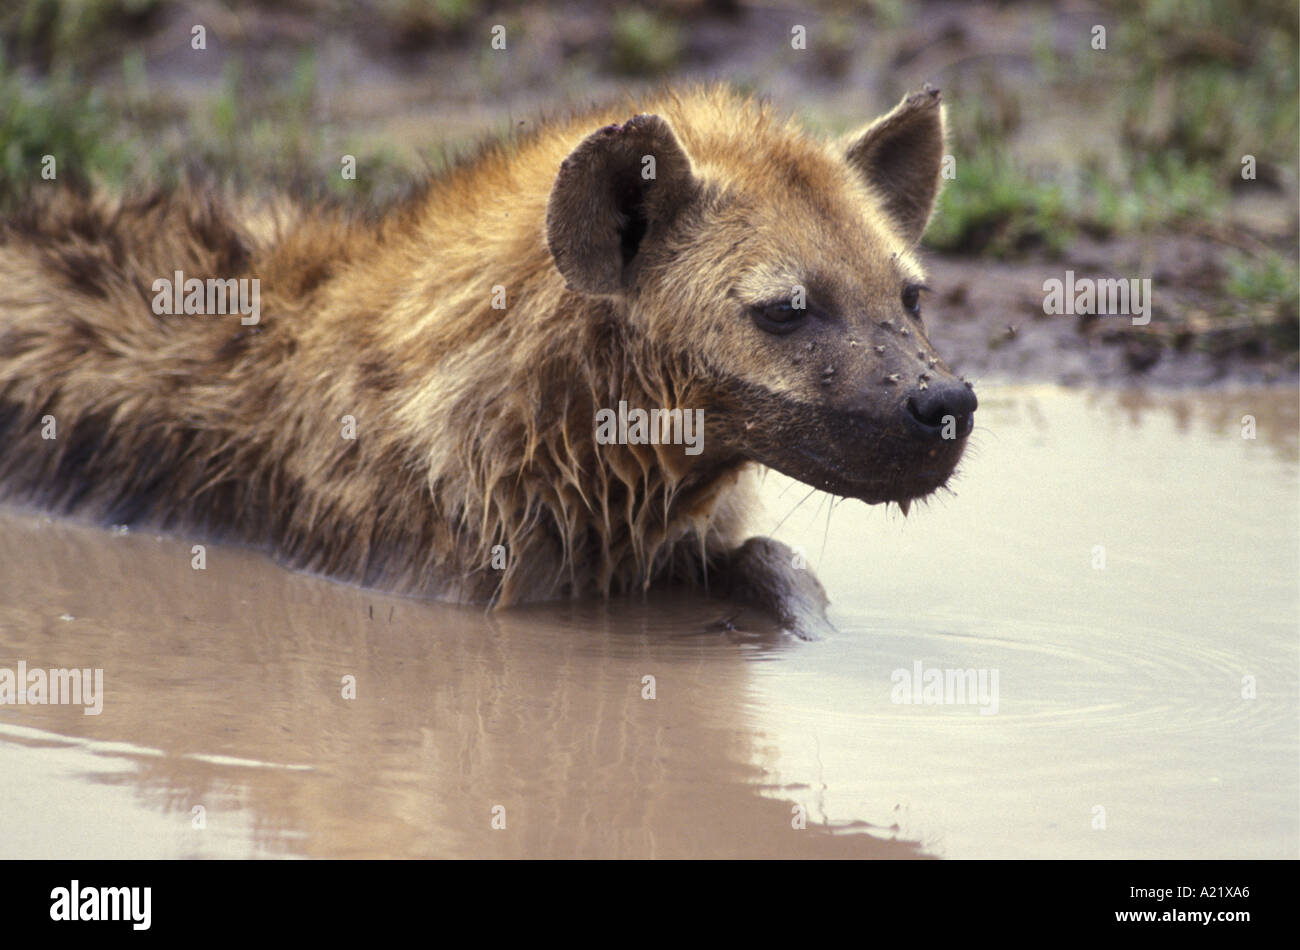 Adult Spotted Hyena wallowing in a pool of water to keep cool Serengeti National Park Tanzania East Africa - Stock Image